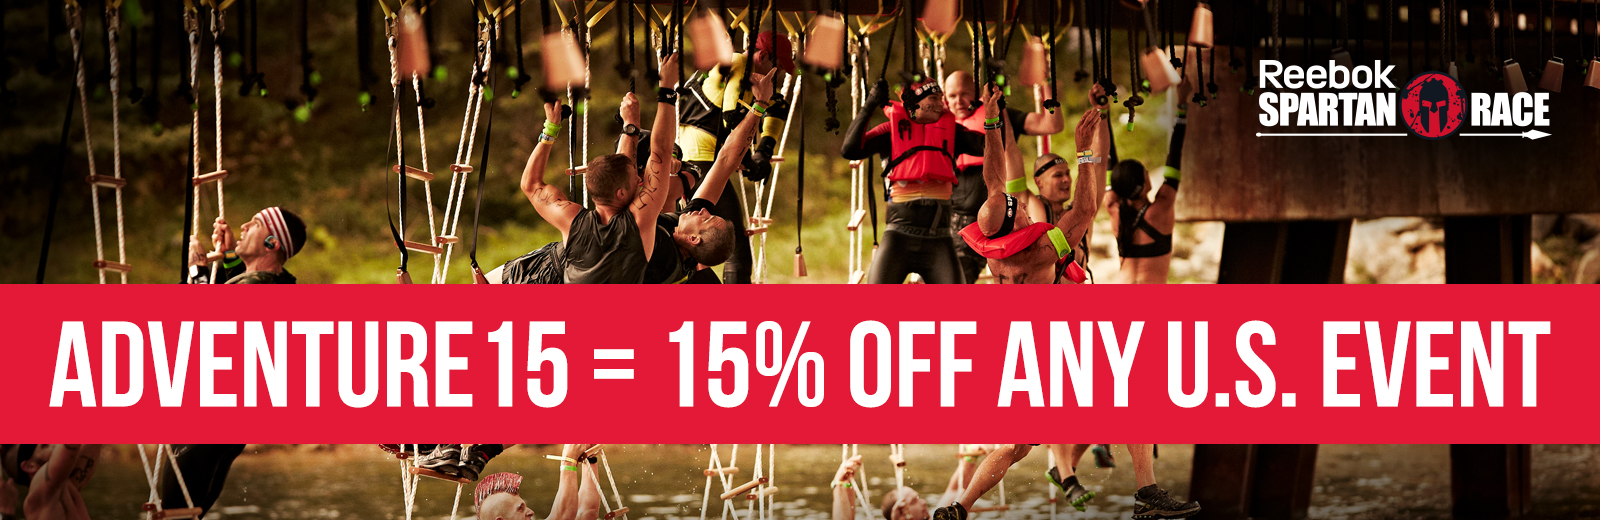 Spartan Race Coupons & Promo Codes